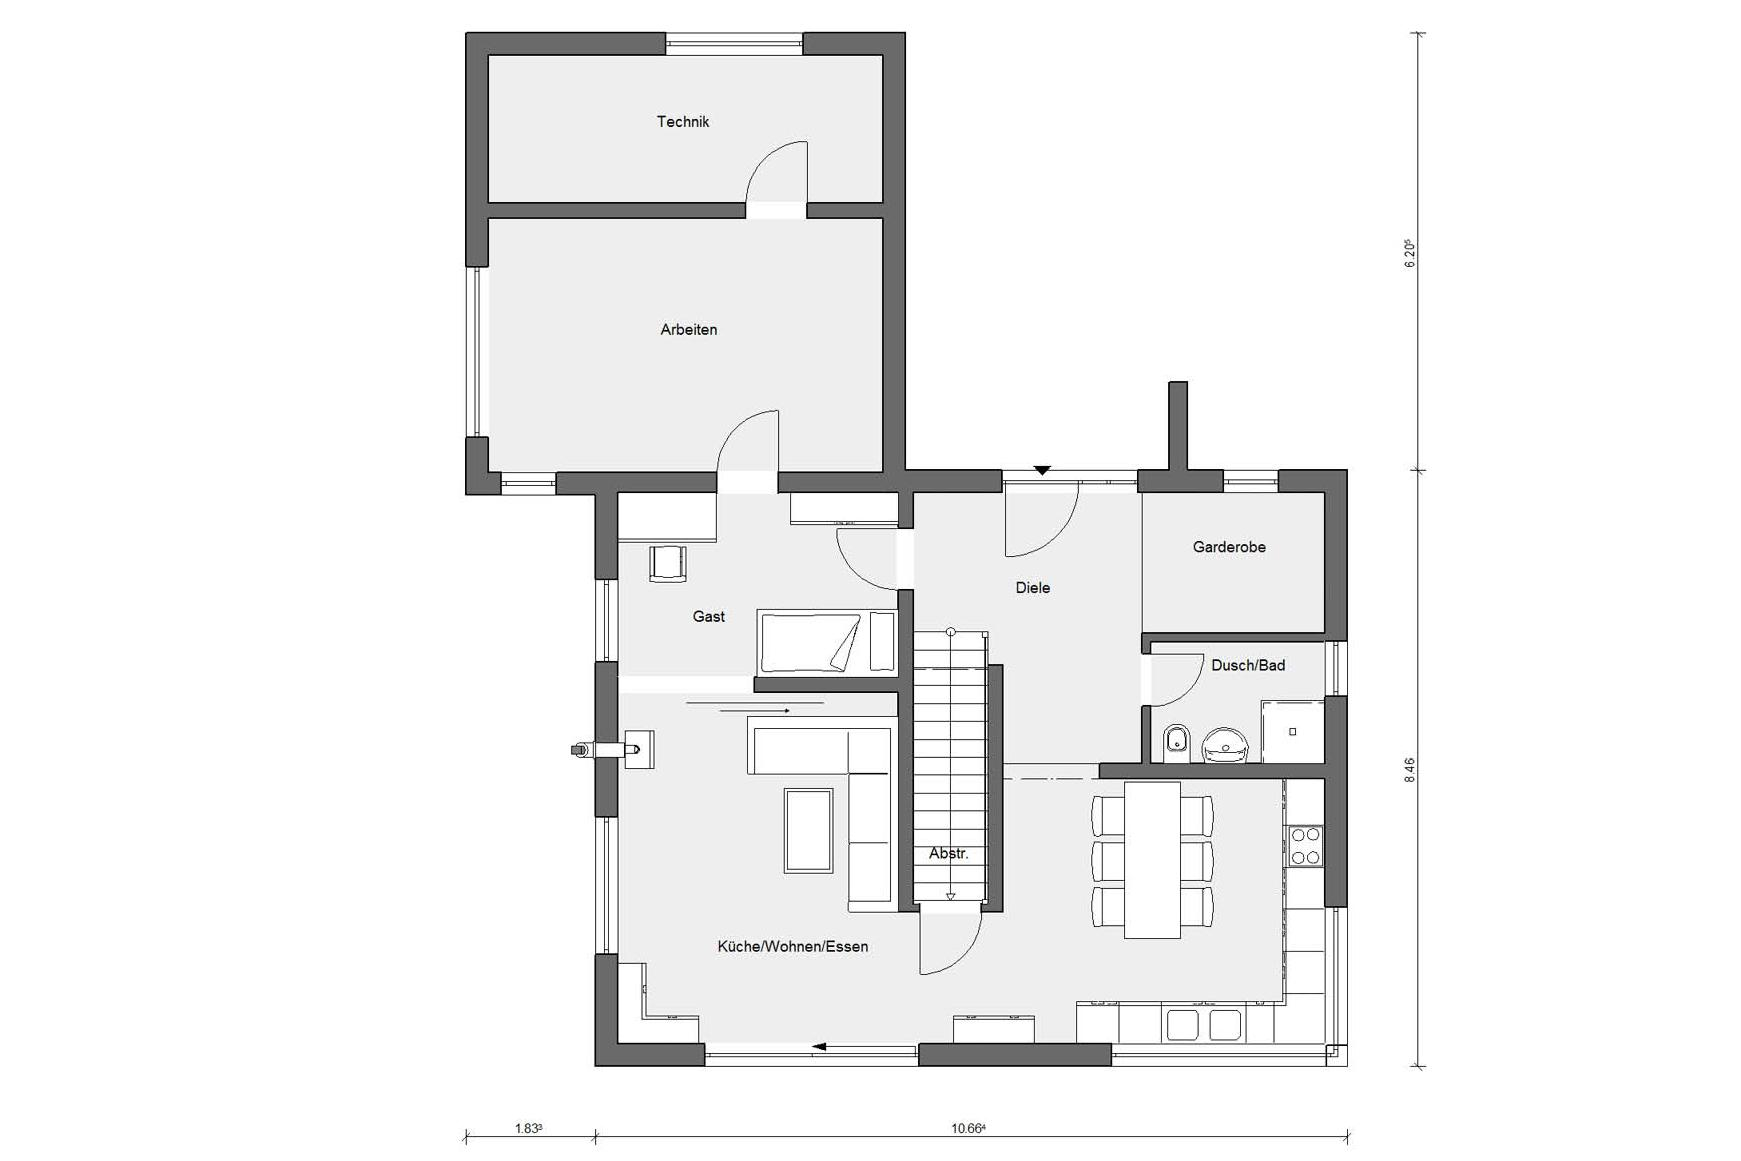 Floor plan E 15-179.1 The energy house for families